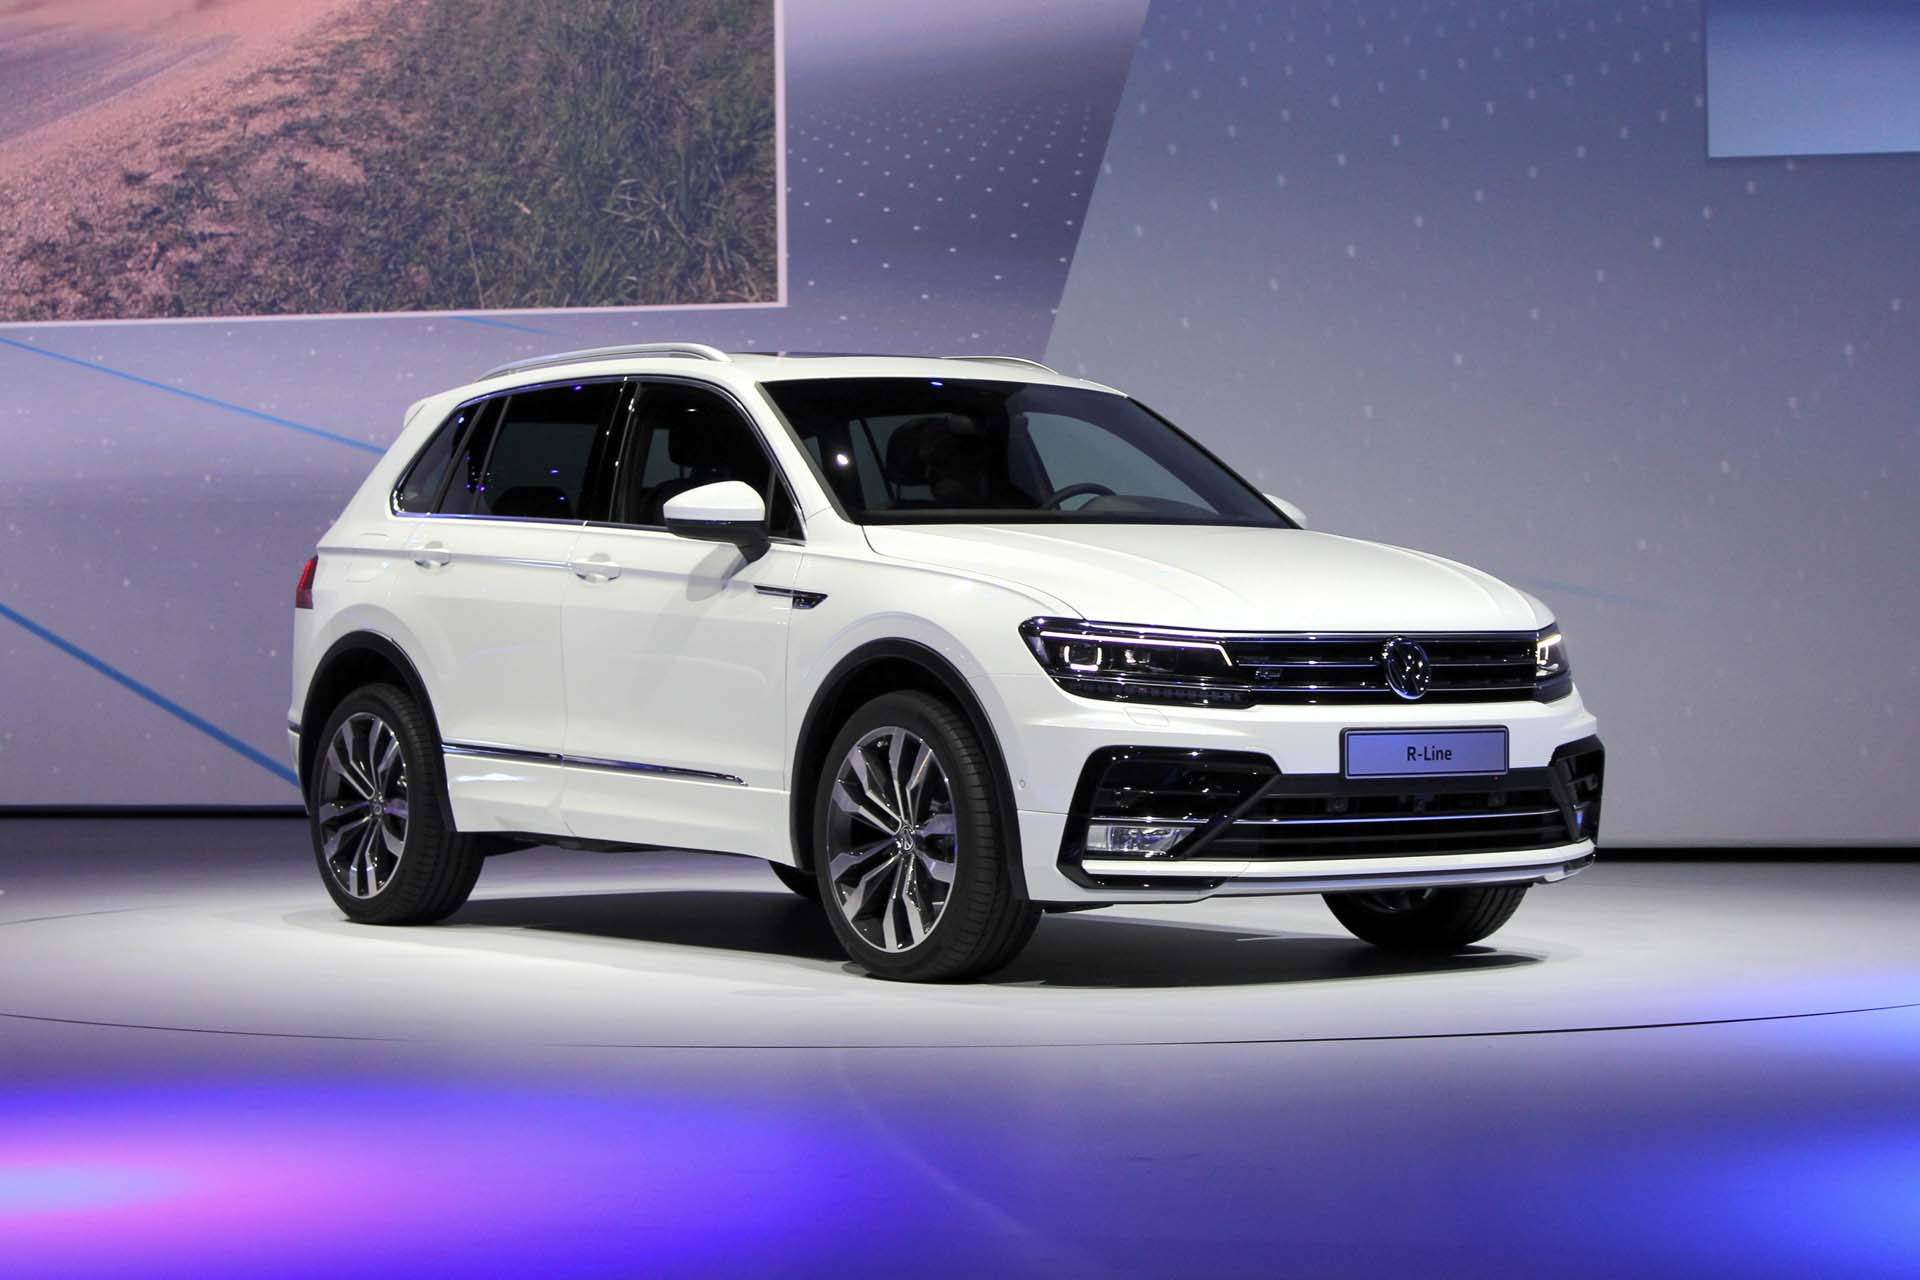 2017 volkswagen tiguan r line. Black Bedroom Furniture Sets. Home Design Ideas